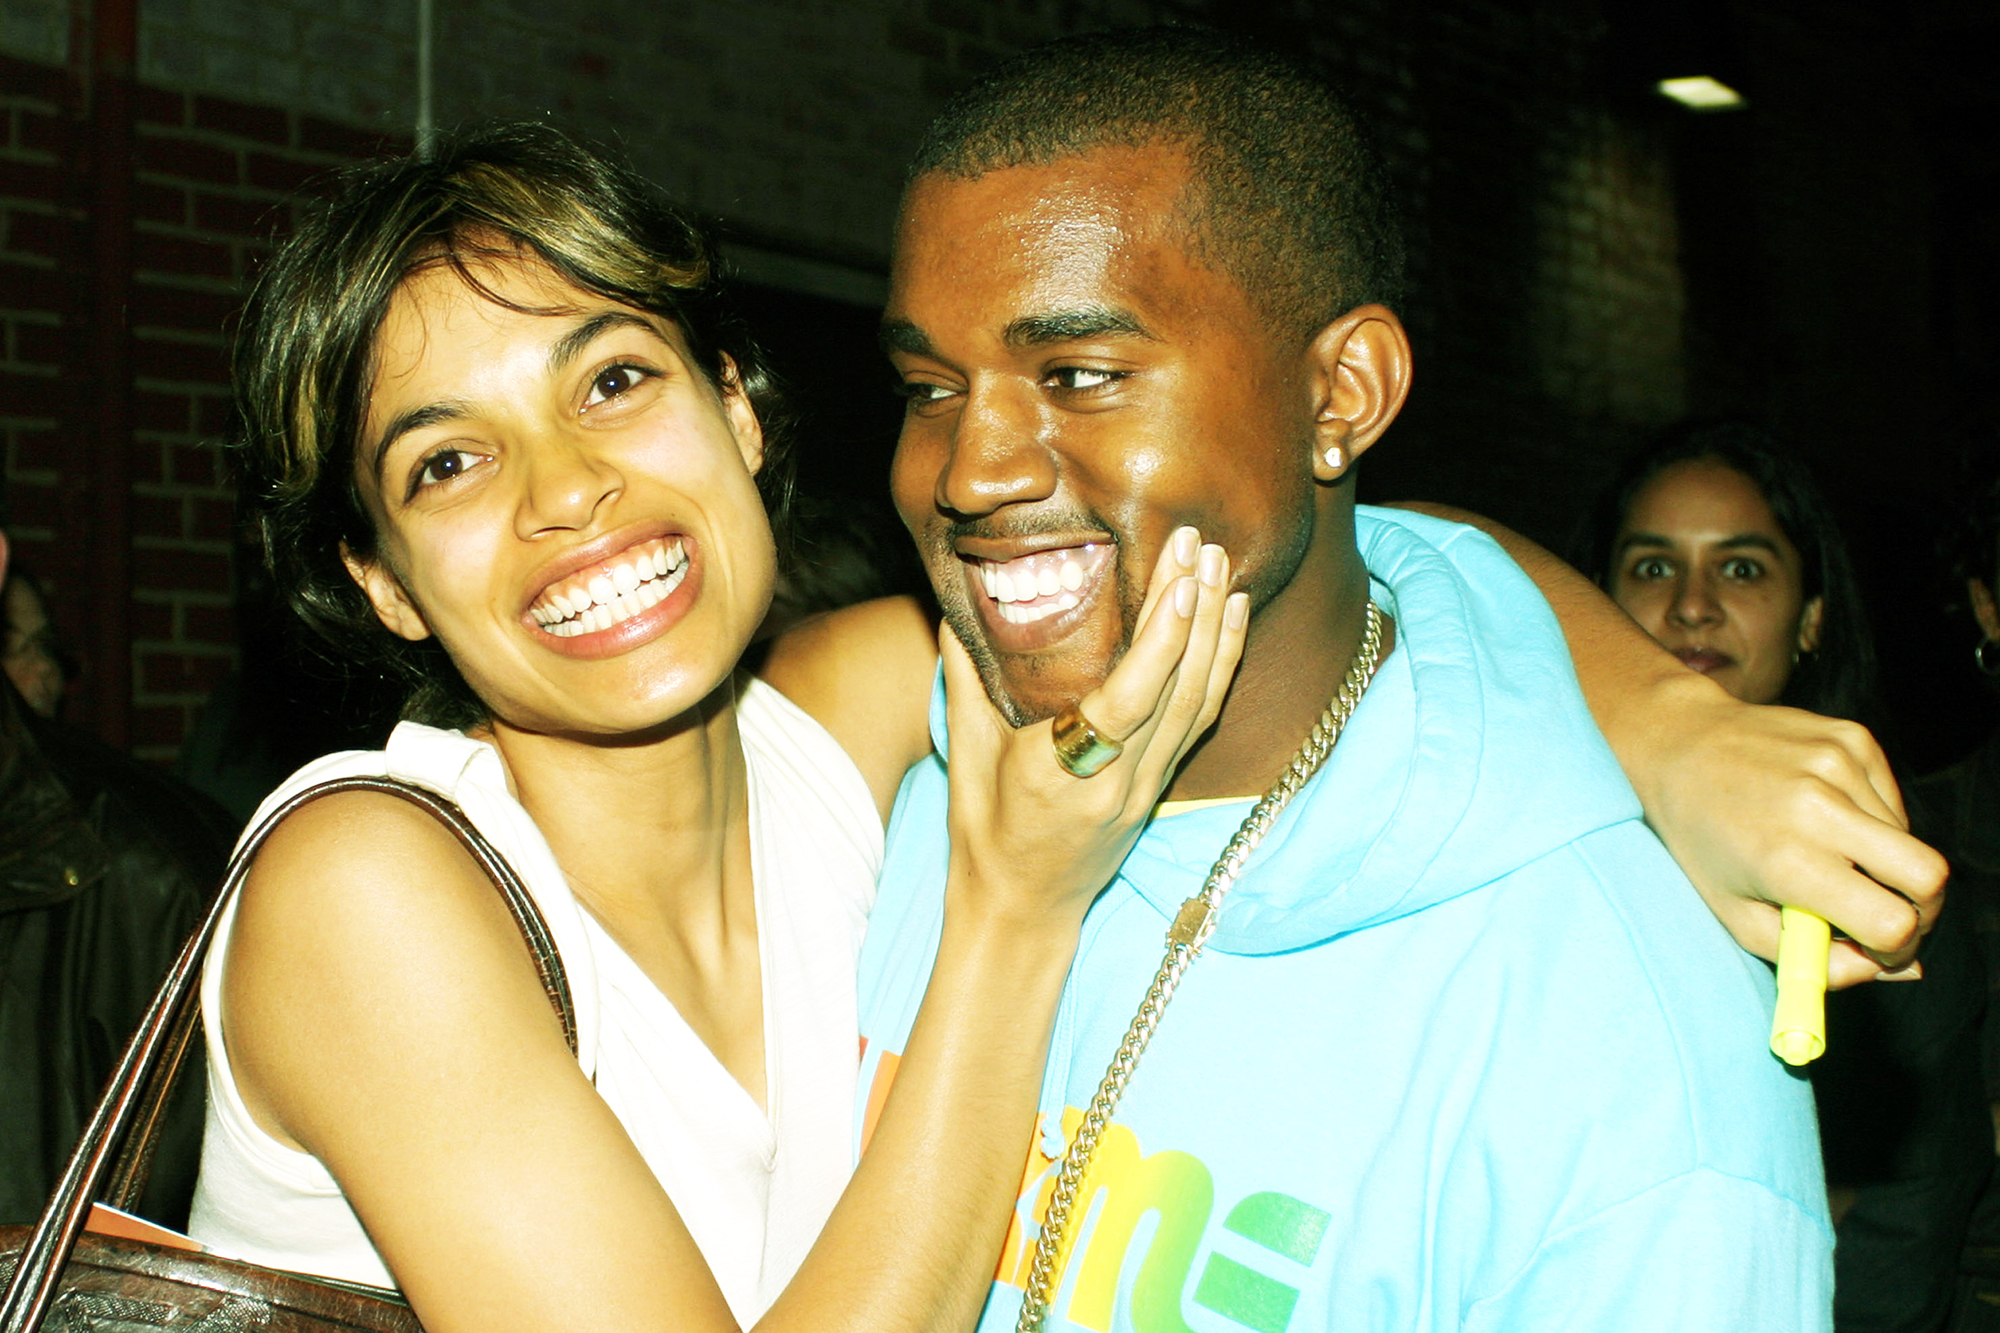 Rosario Dawson and Kanye West in New York City, on June 9, 2003.